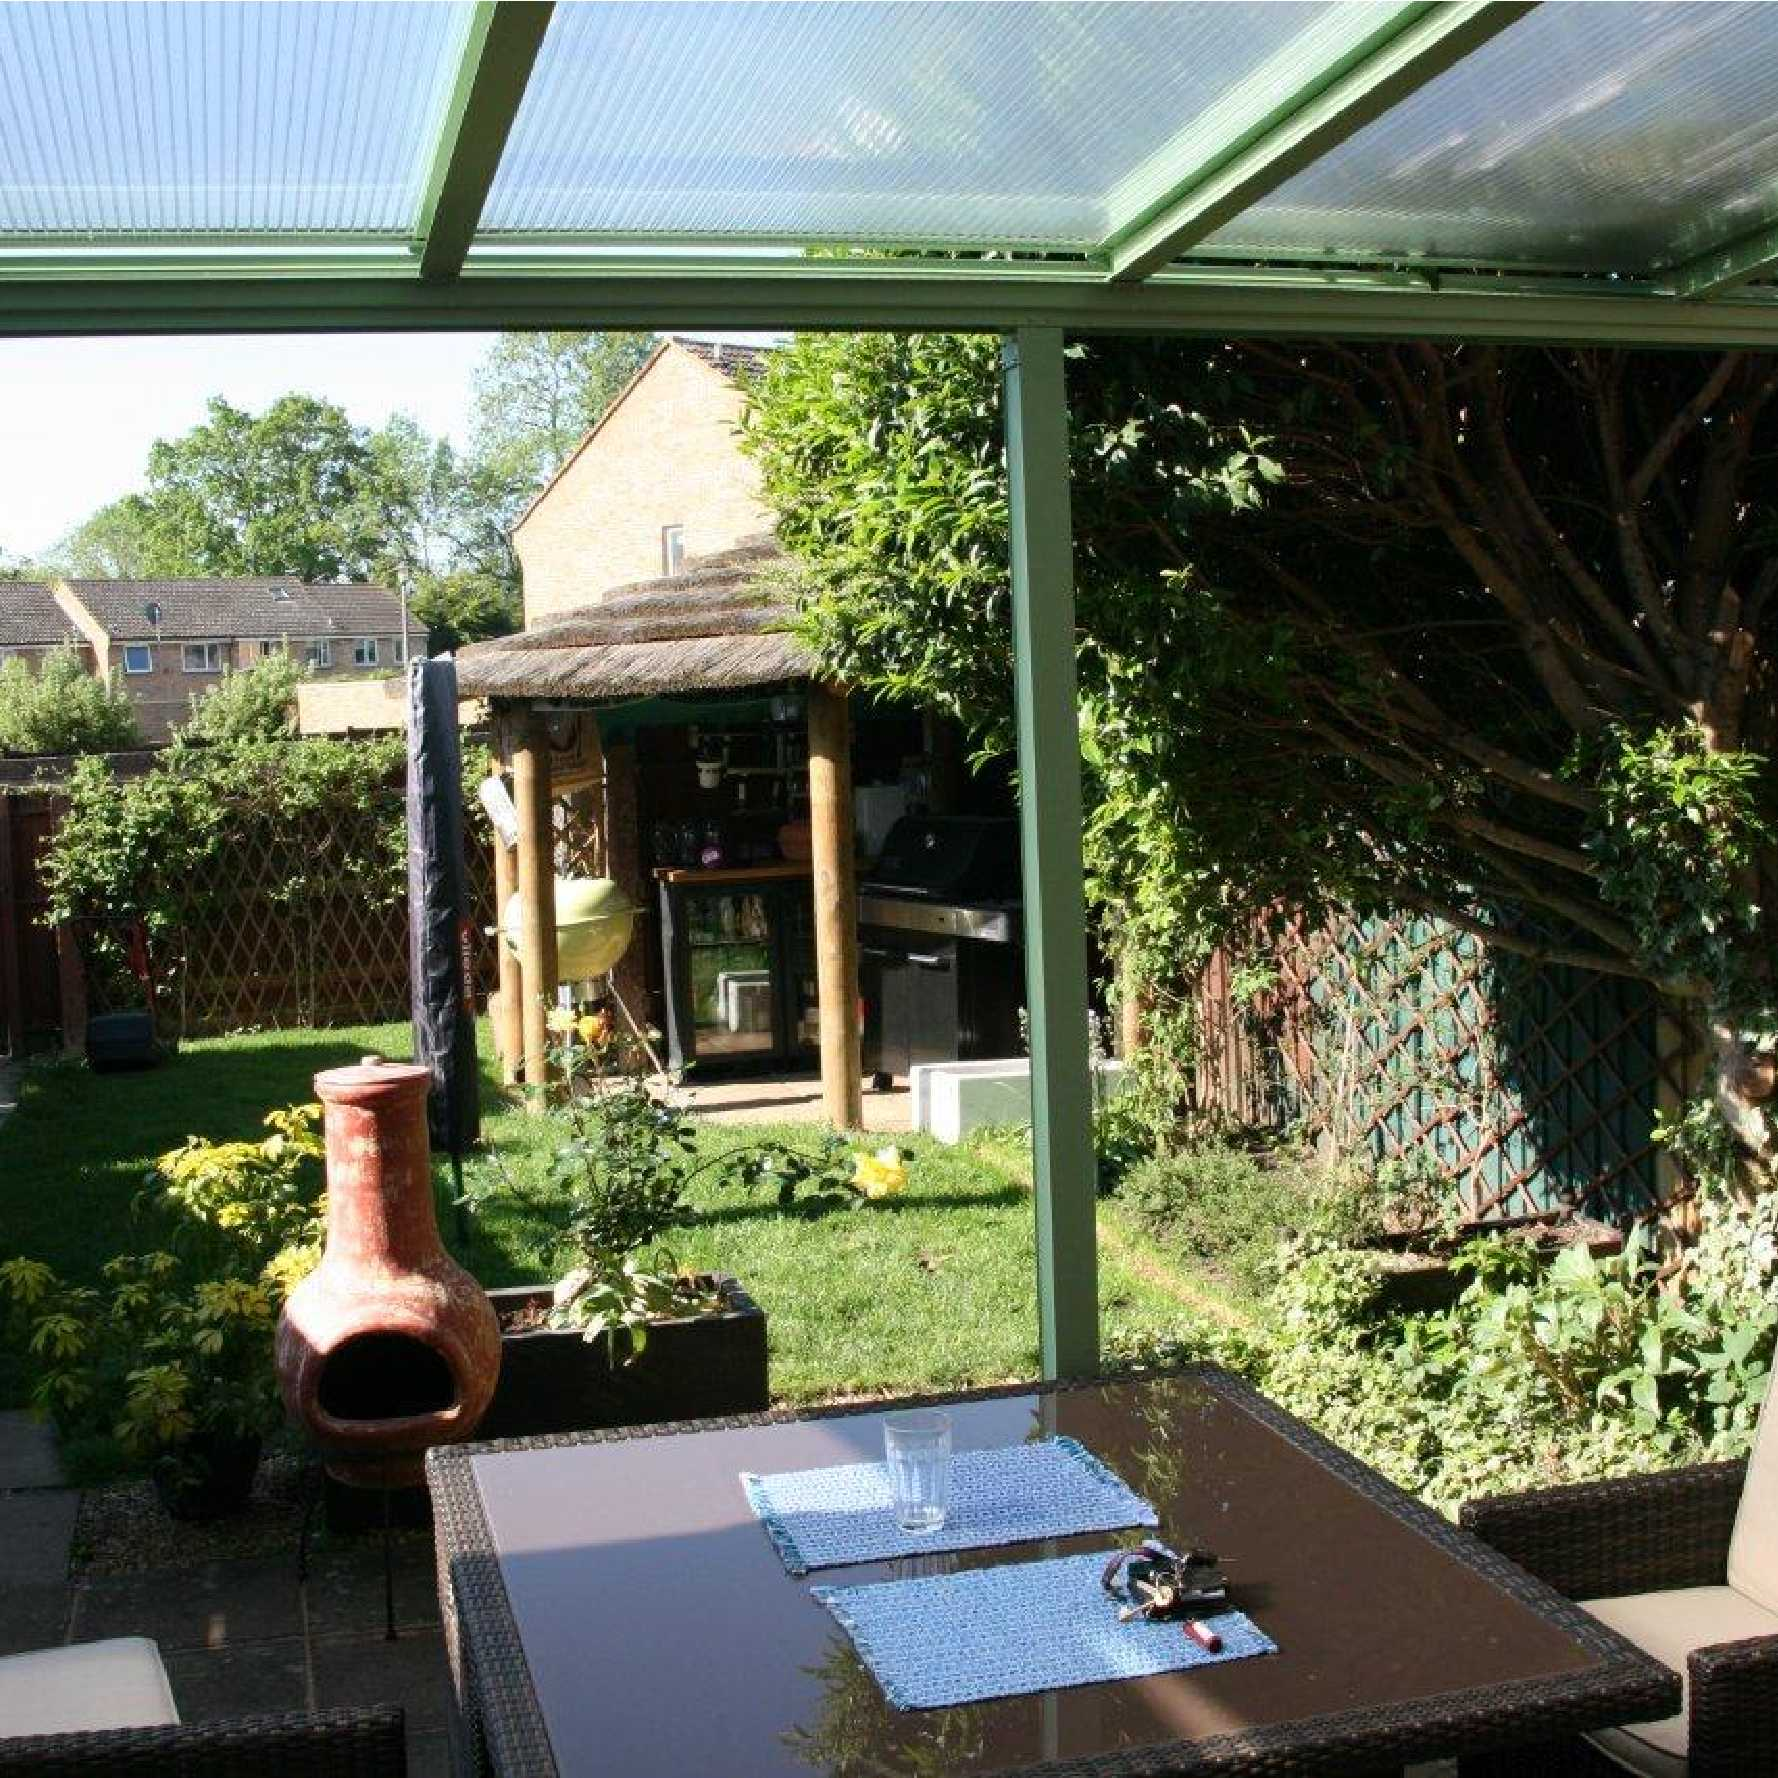 Affordable Omega Smart White Lean-To Canopy with 16mm Polycarbonate Glazing - 12.0m (W) x 3.0m (P), (5) Supporting Posts